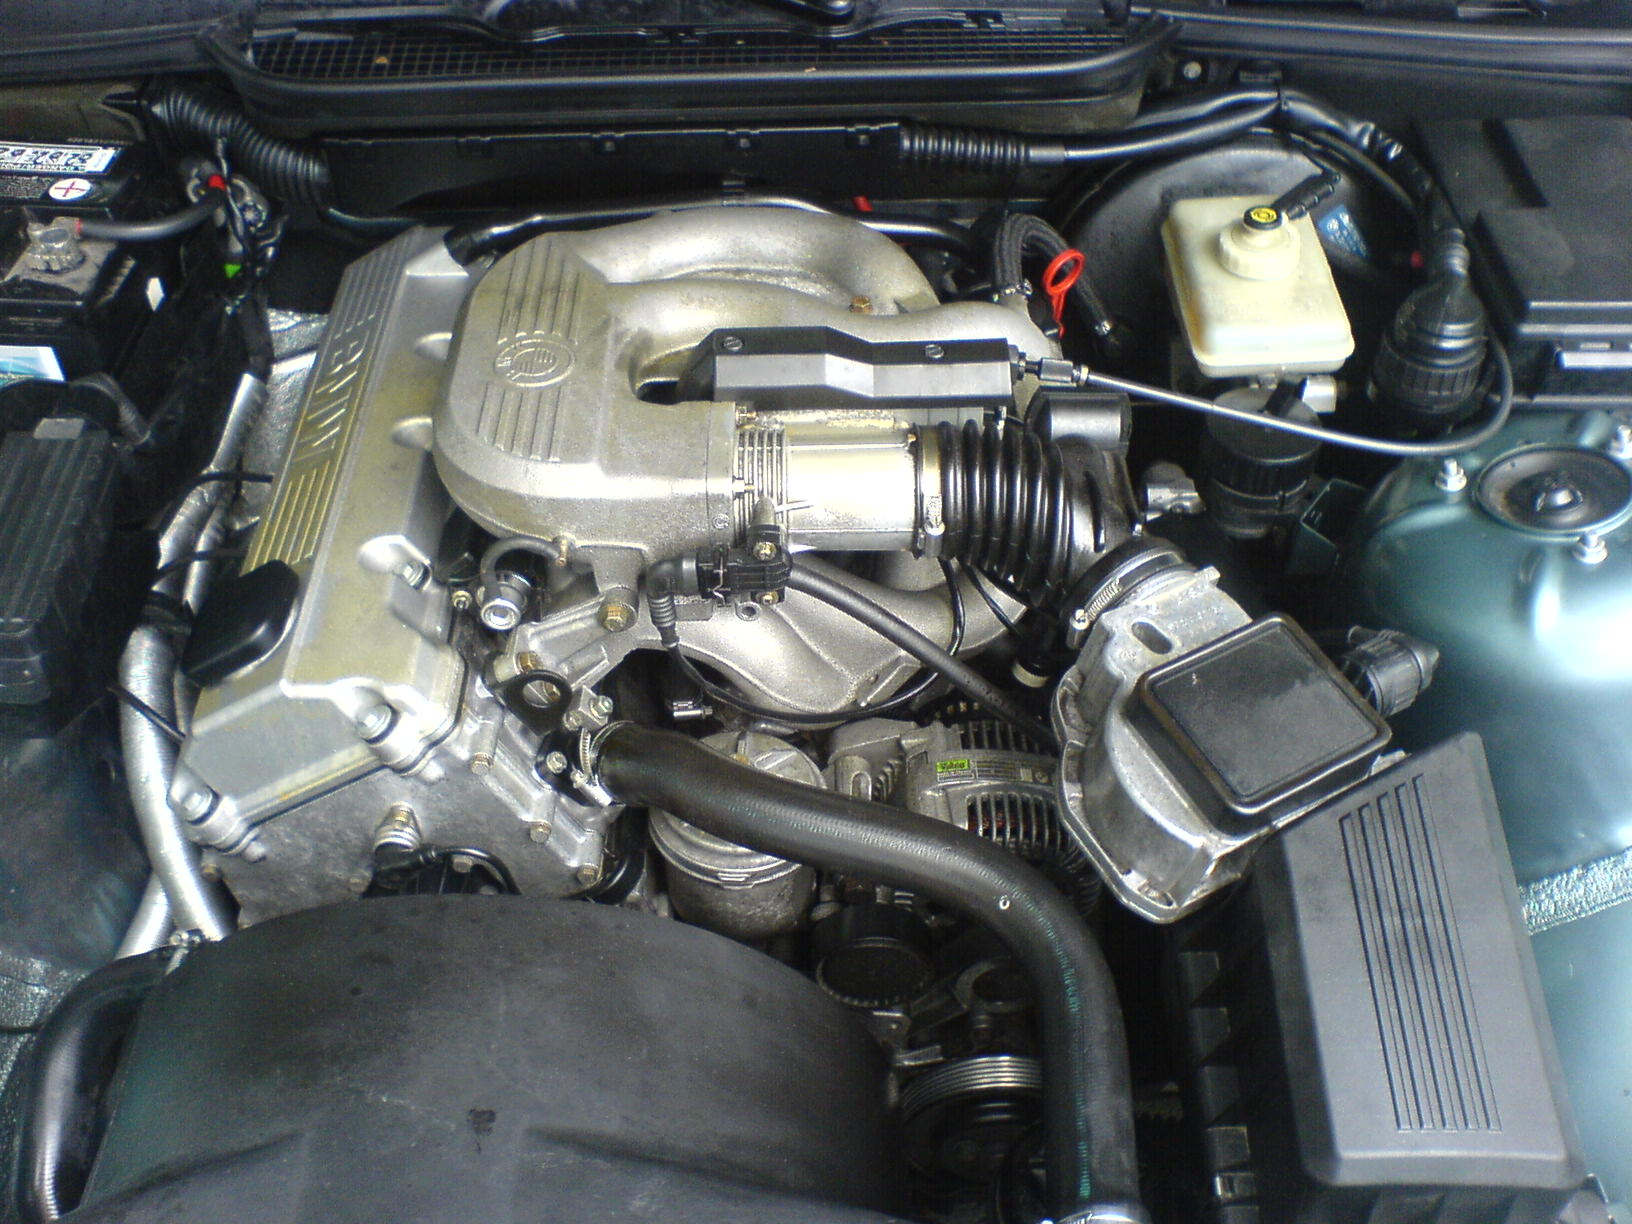 Bmw E36 318i Engine Wiring Diagram 1995 Trusted Diagrams